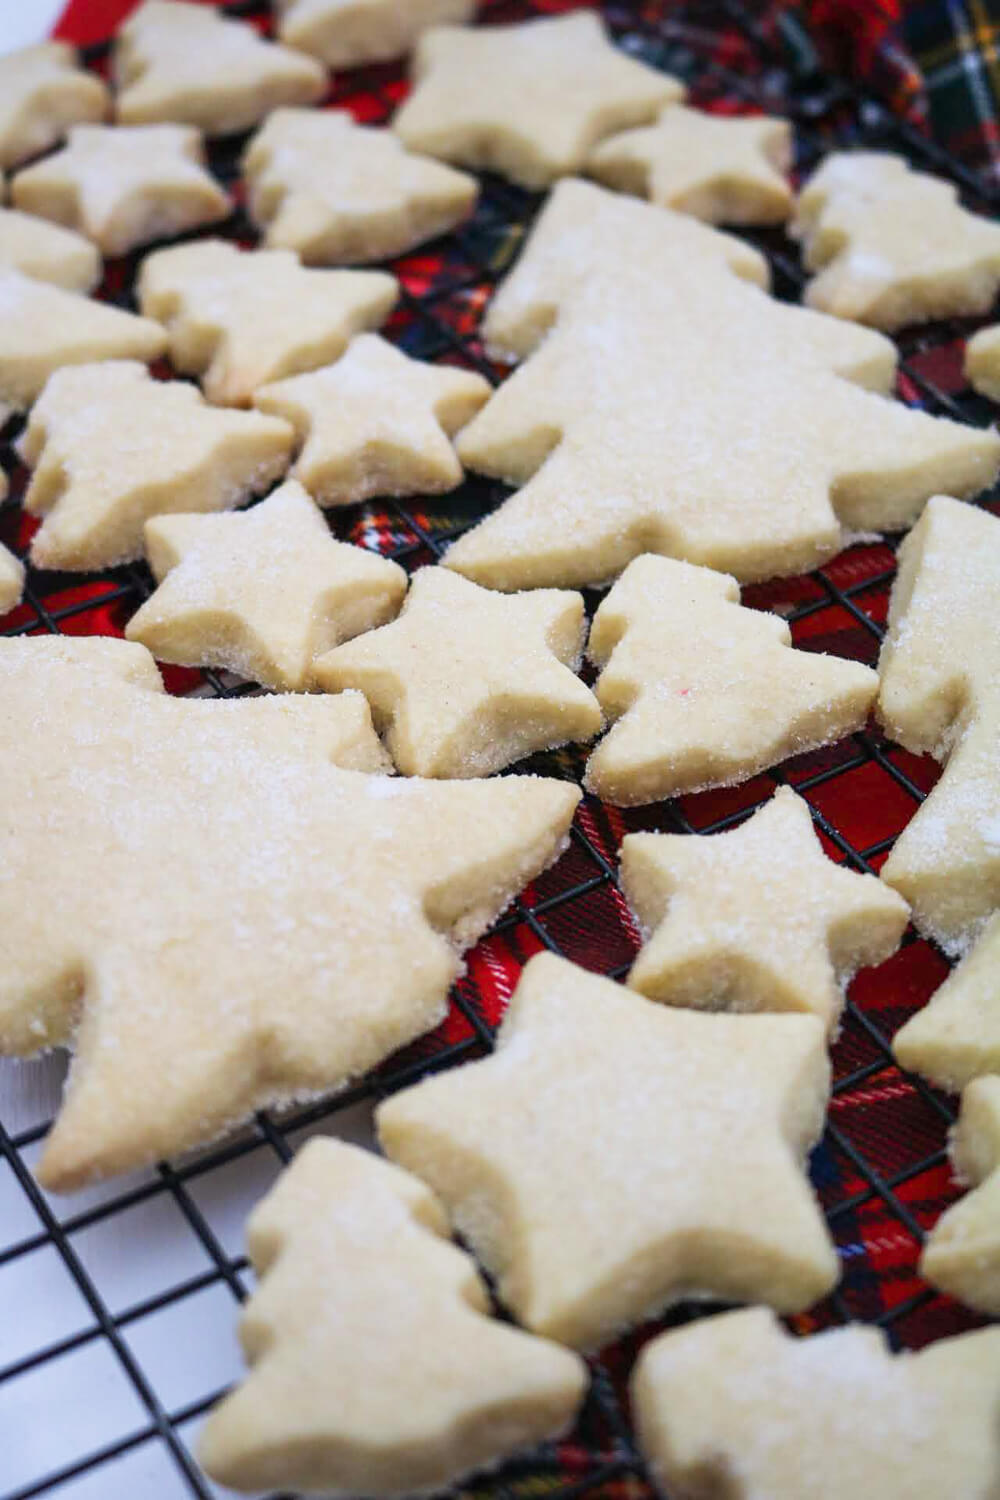 Classic shortbread | Take Some Whisks